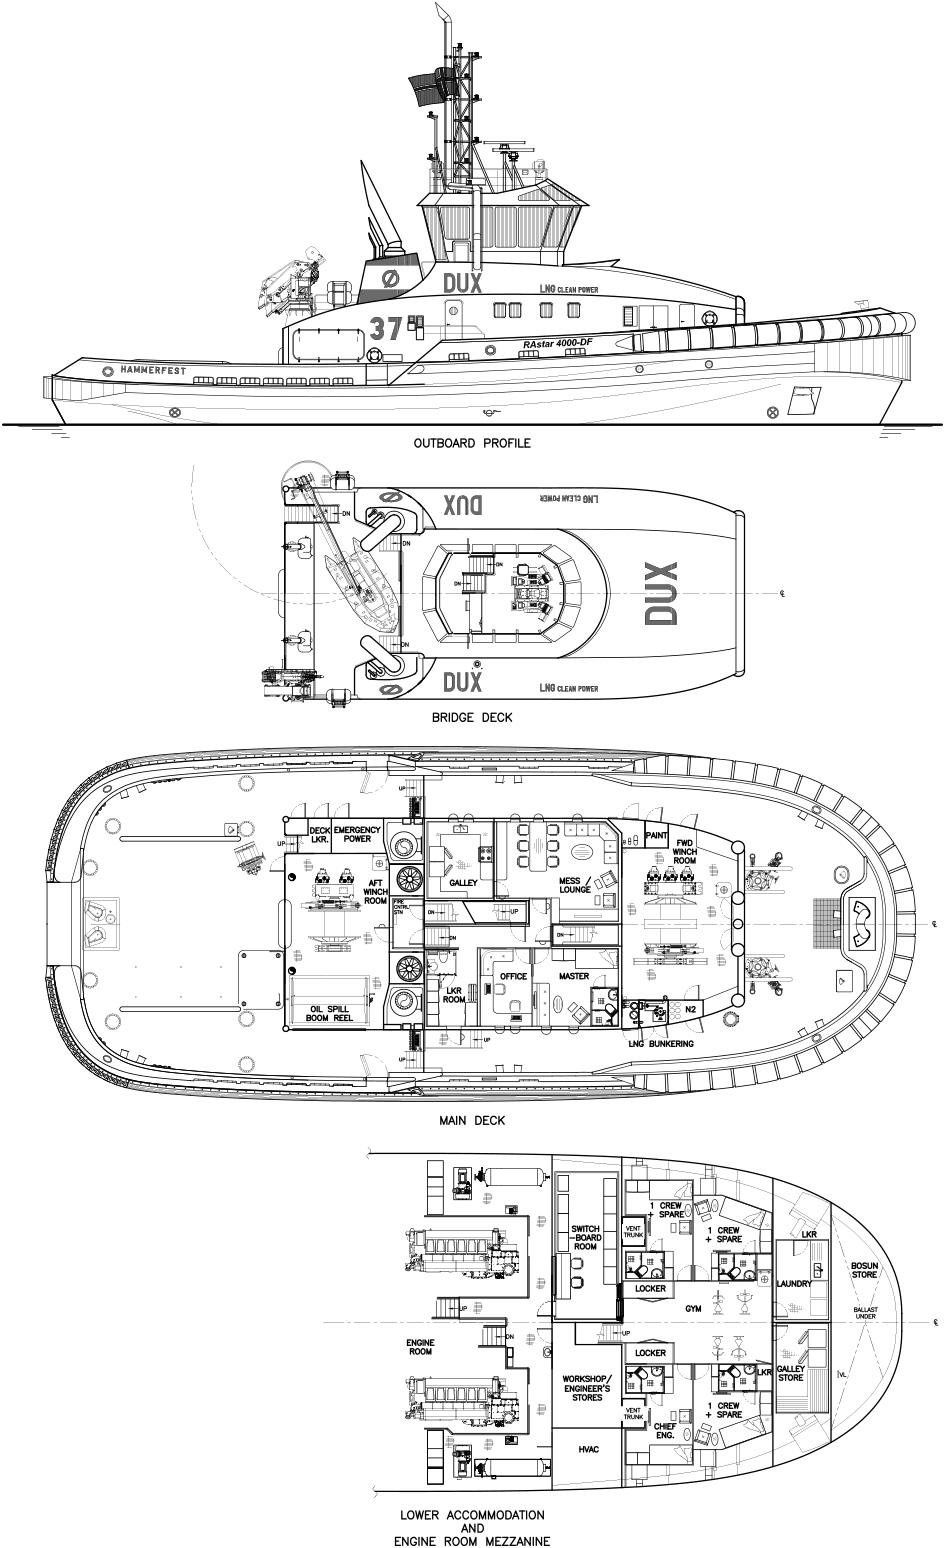 First Of Robert Allan Ltds Rastar 4000 Df Class Dual Fuel Extreme Ajax Boiler Wiring Diagram For More Information On The Escort Tugs Or Any Other High Performance Vessel Designs Developed By Ltd Please Contact